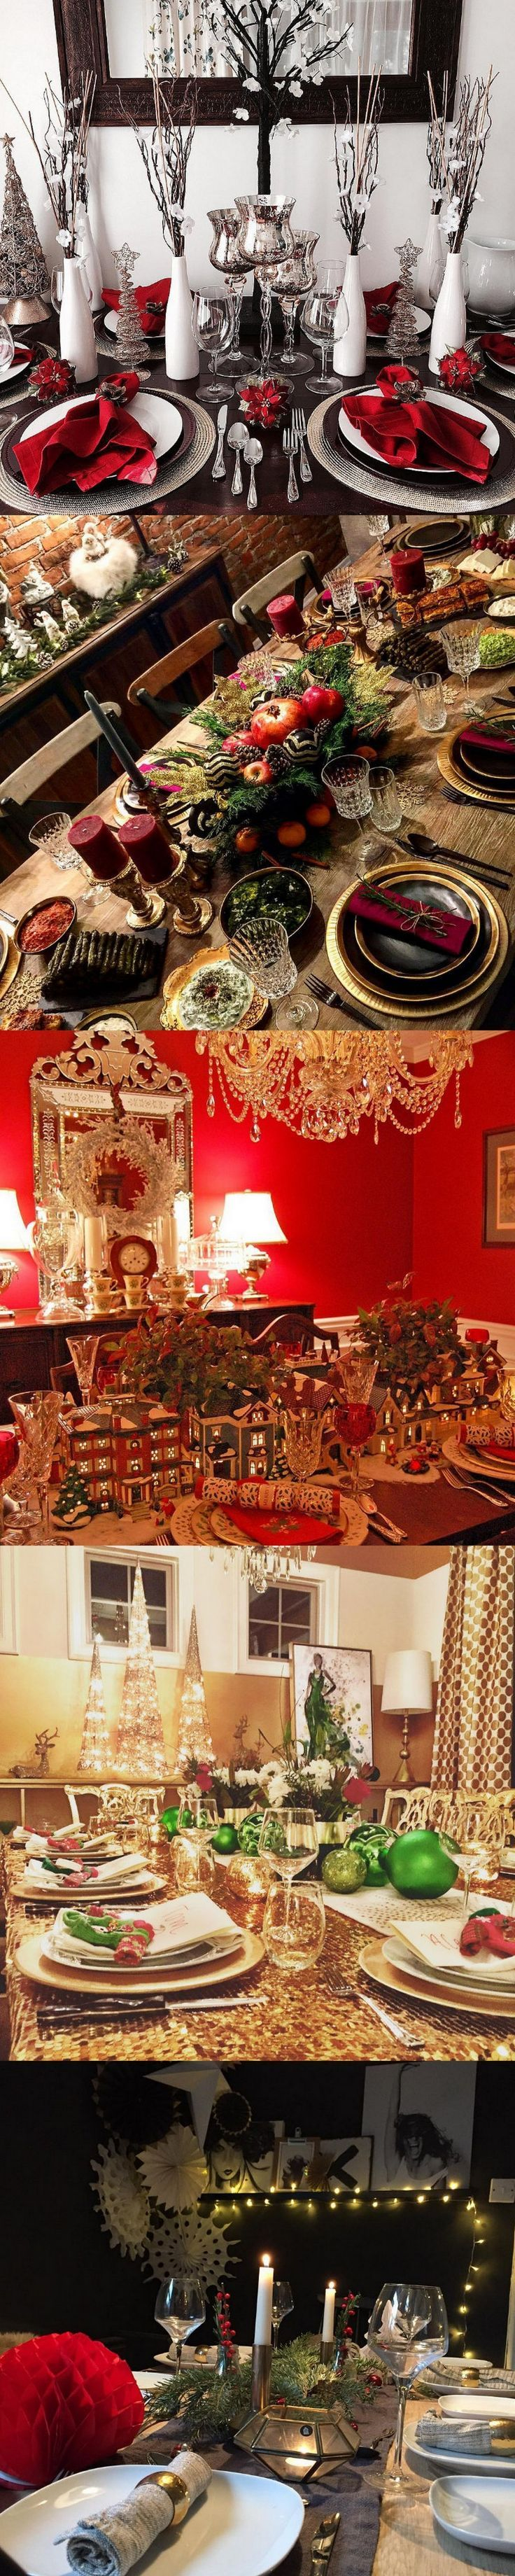 70 ultra modern christmas tablescapes christmas table decorating ideas - Christmas Table Decorating